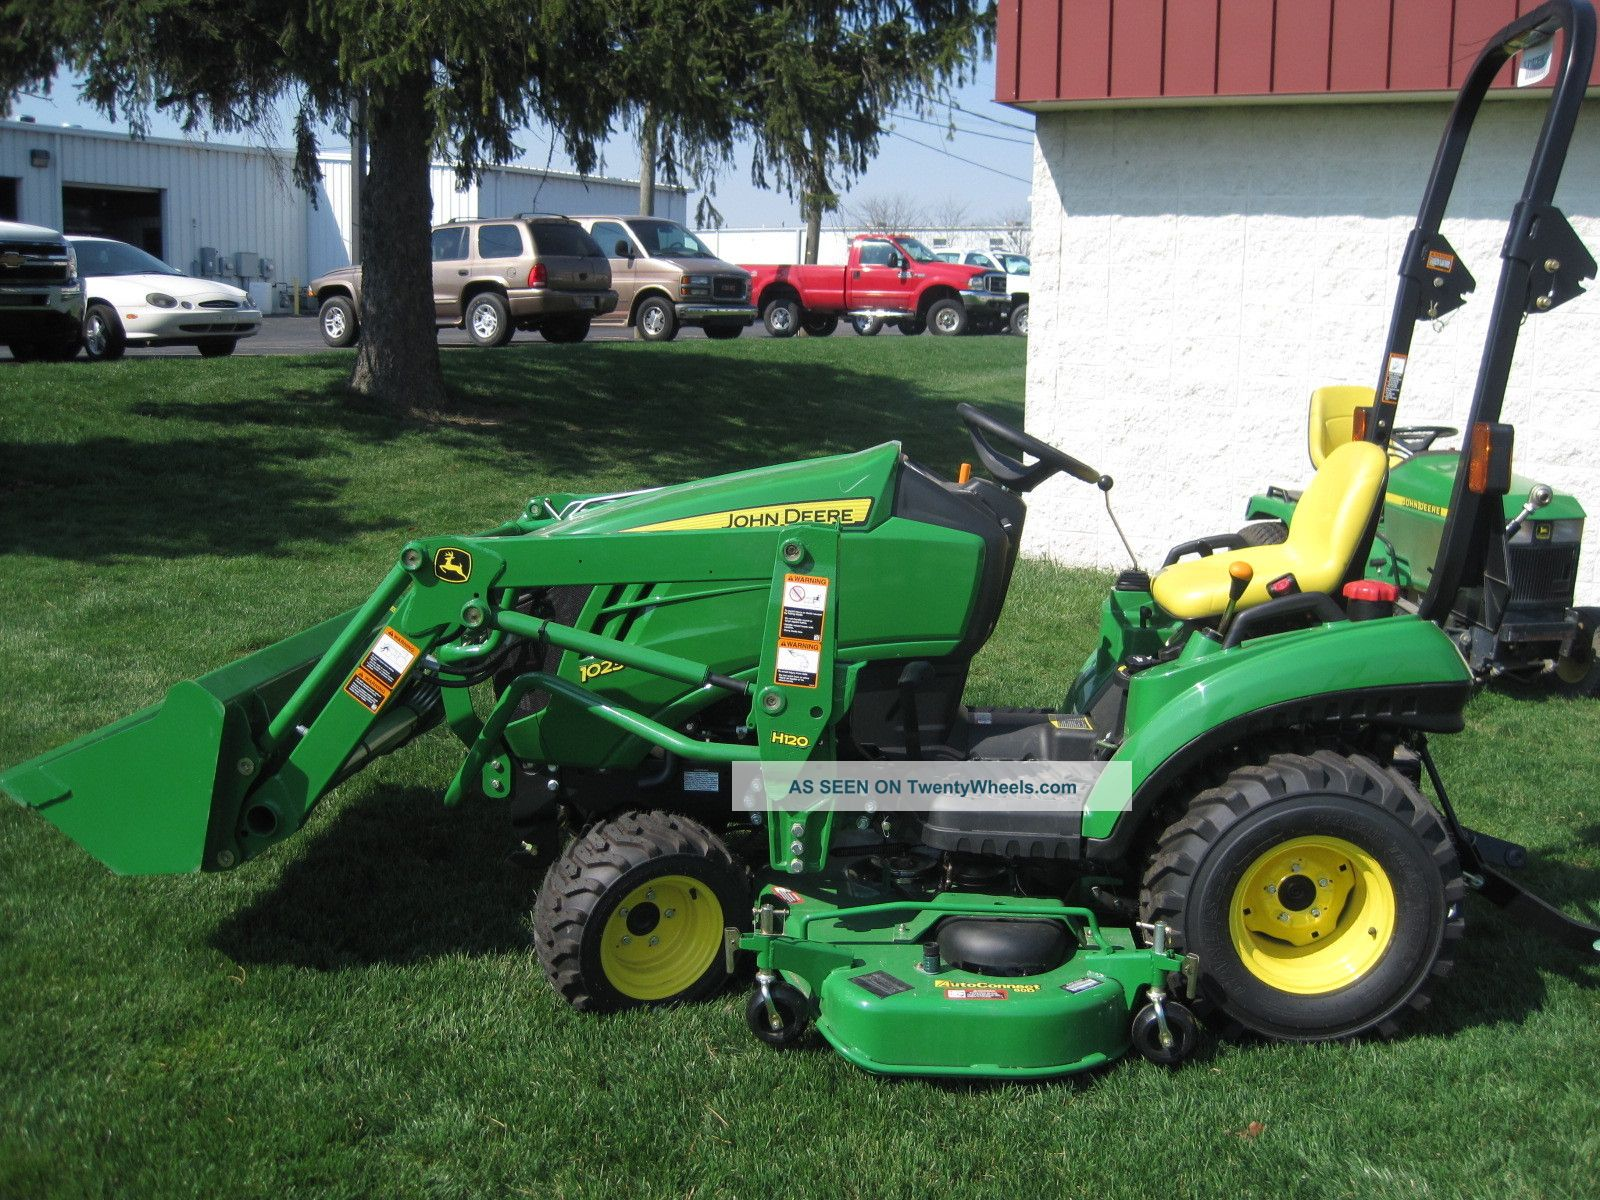 New John Deere 1023e 1 Series Sub Compact Tractor With Front Loader